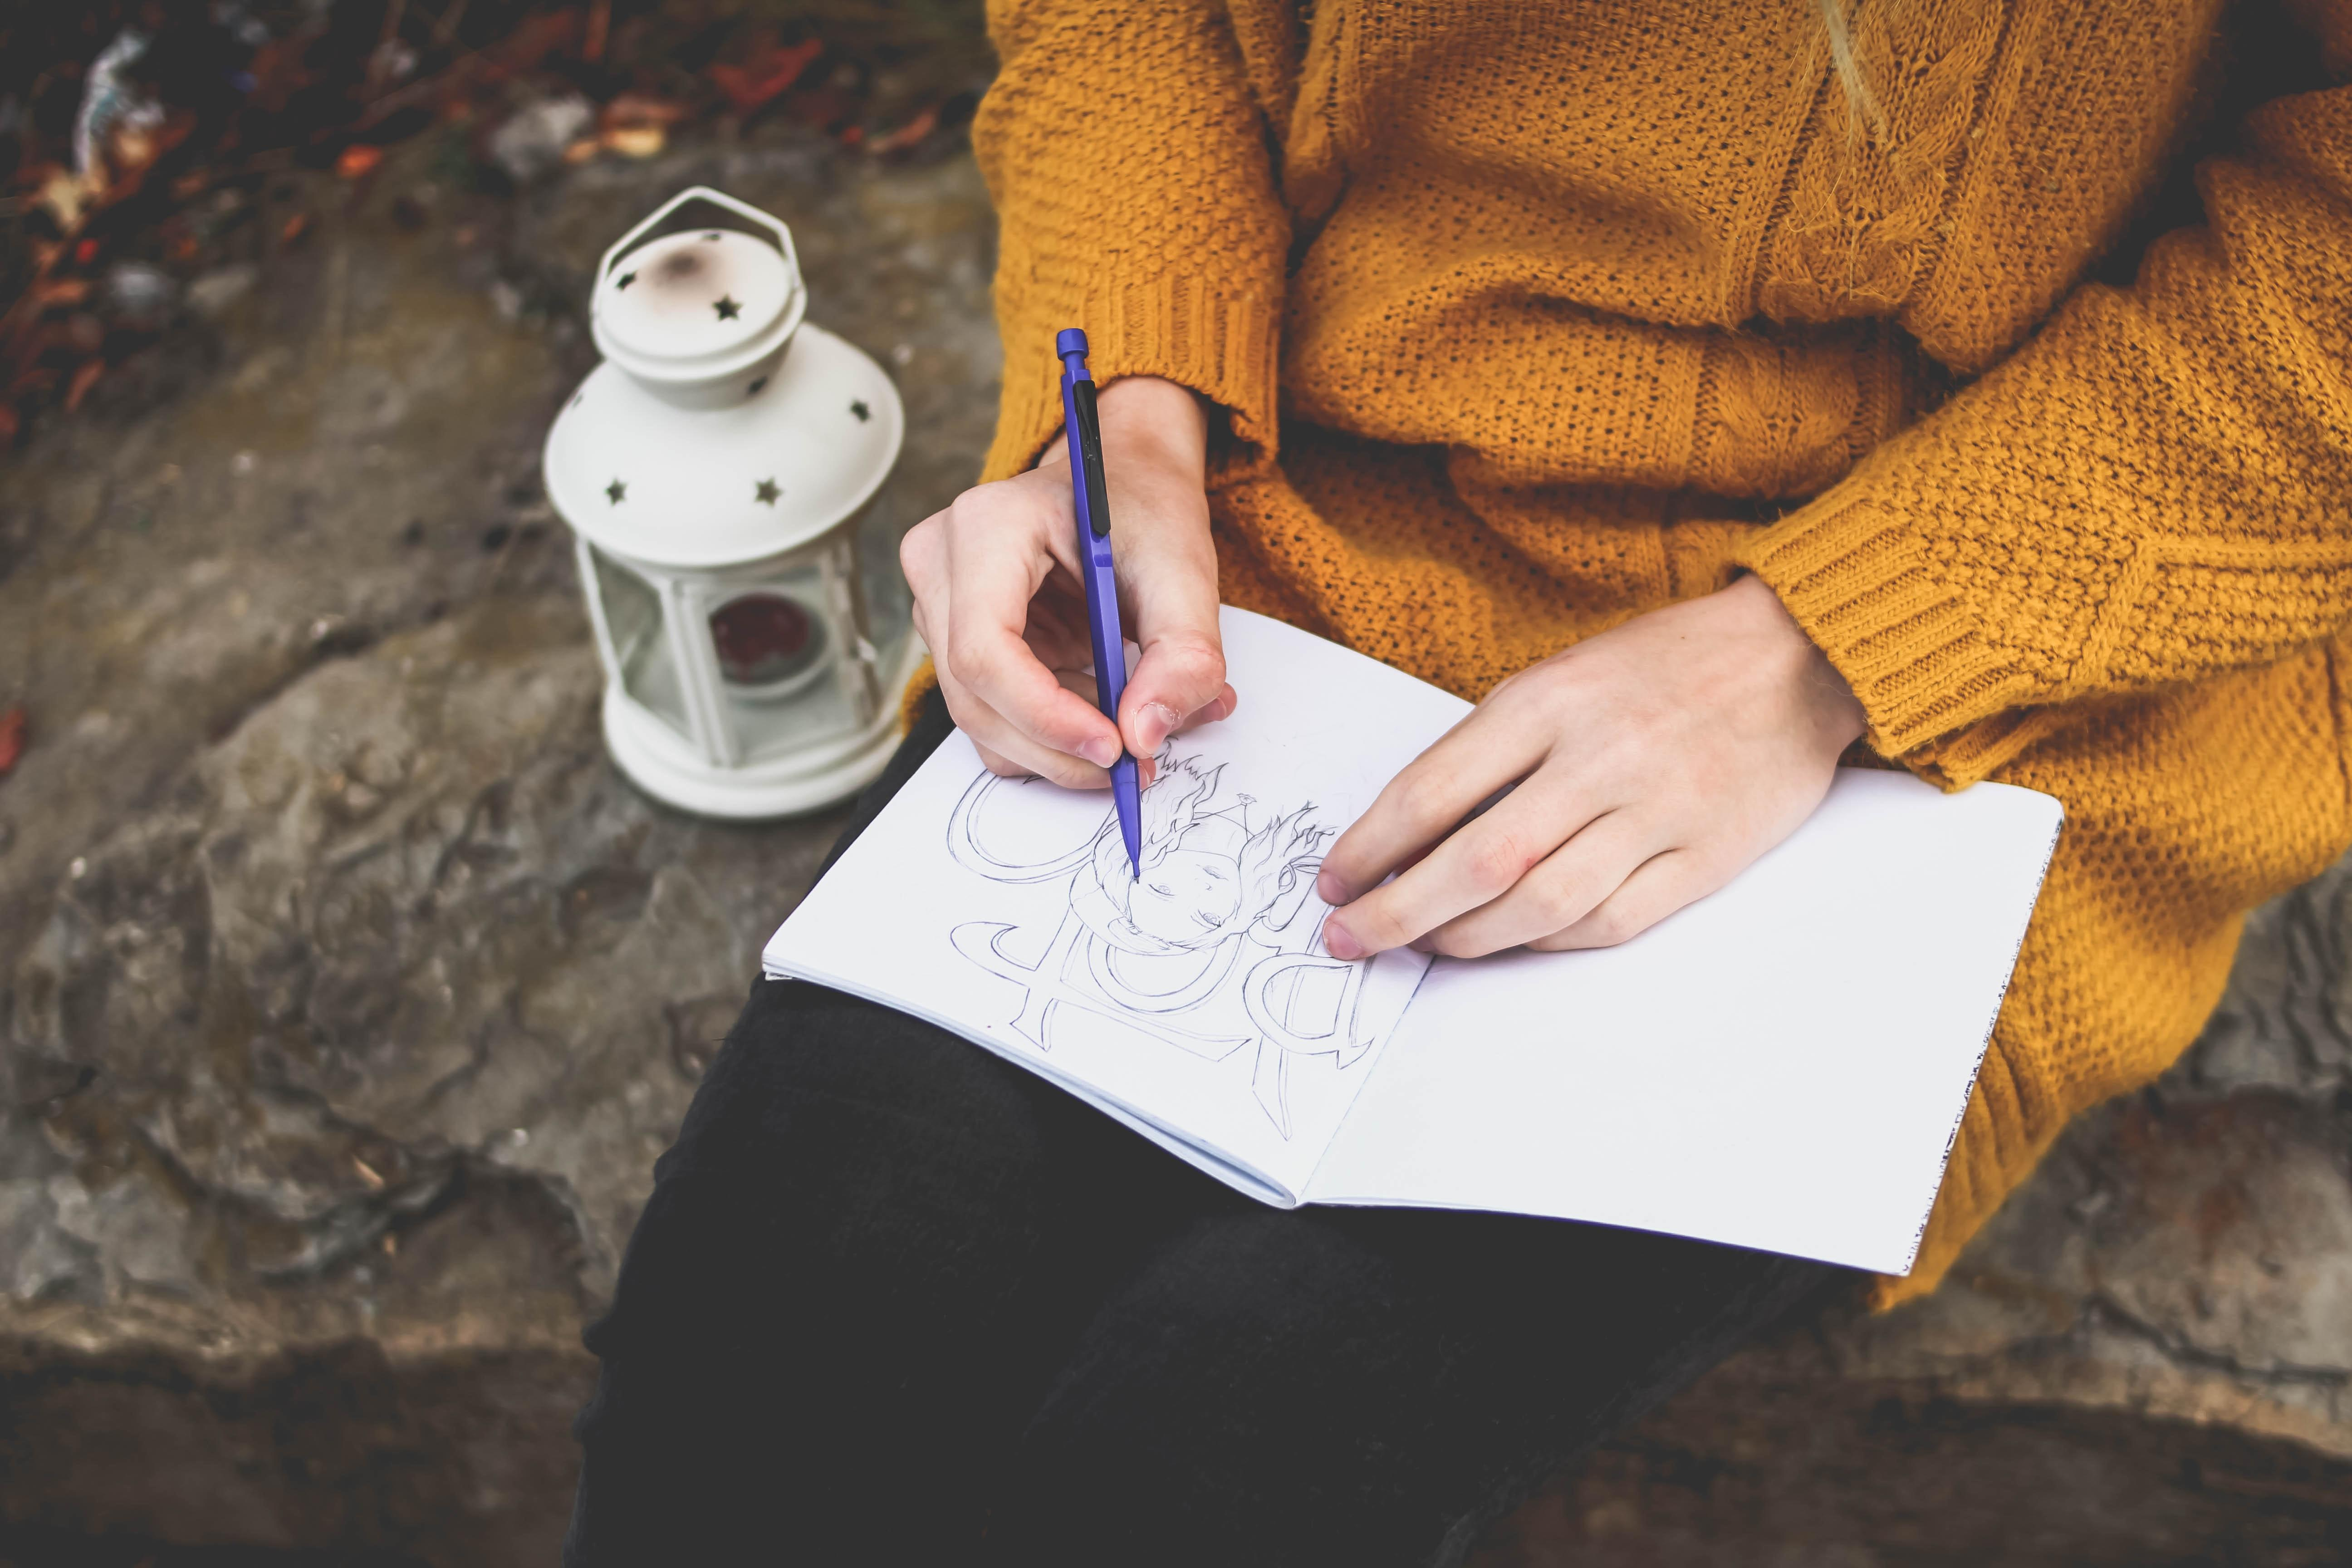 a photo of a person drawing in a journal